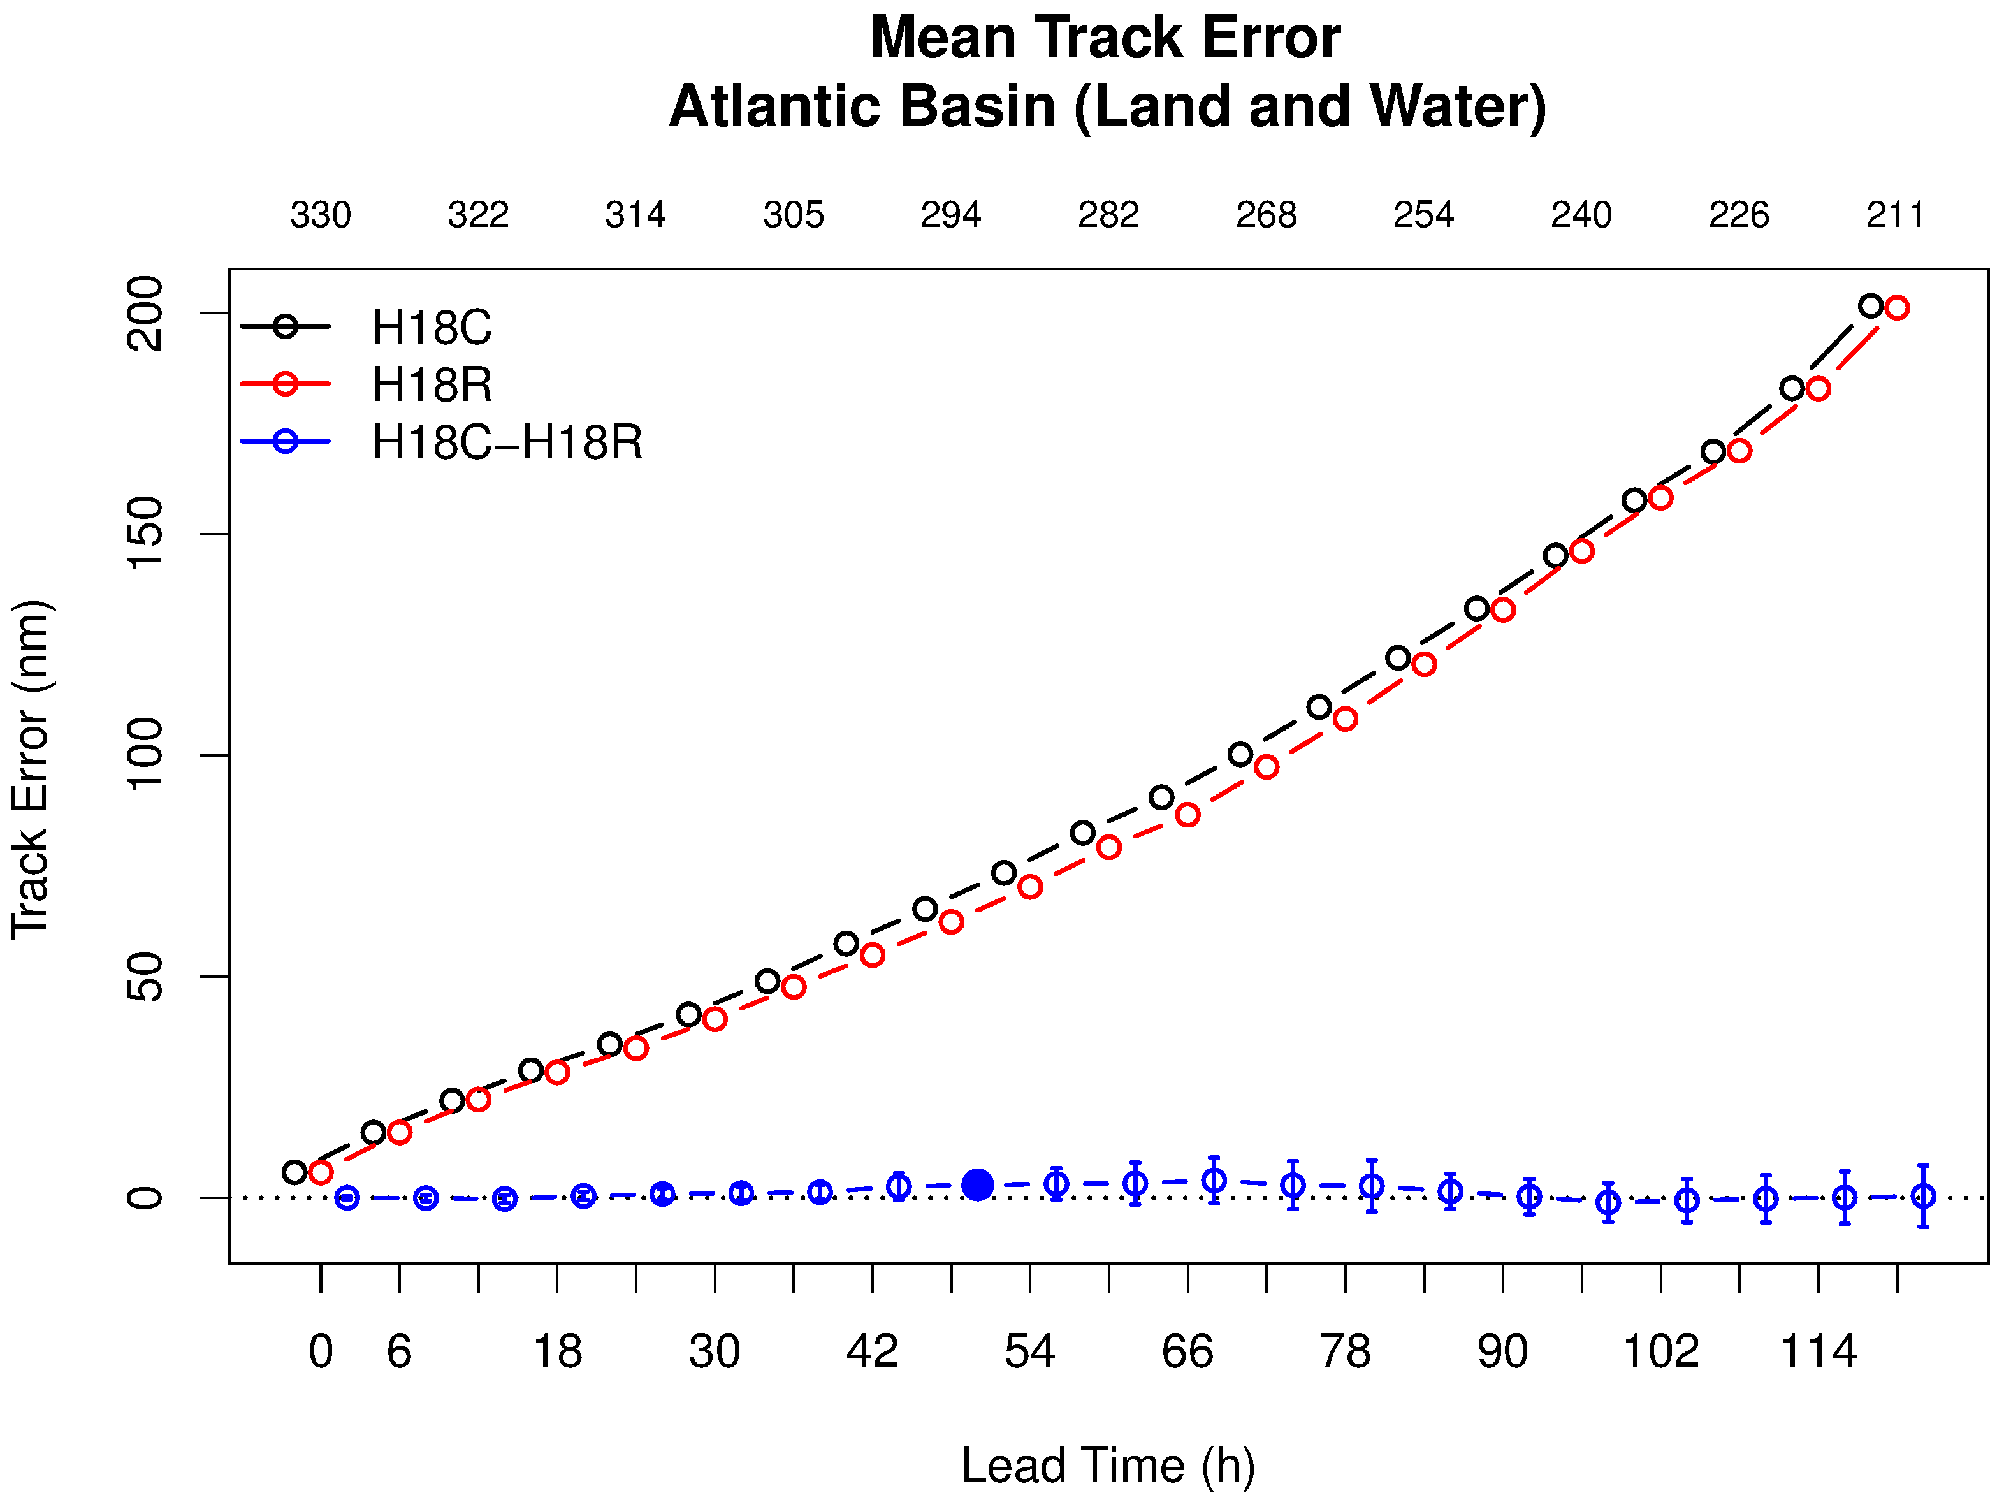 Mean Track Error - Atlantic Basin (land and water)